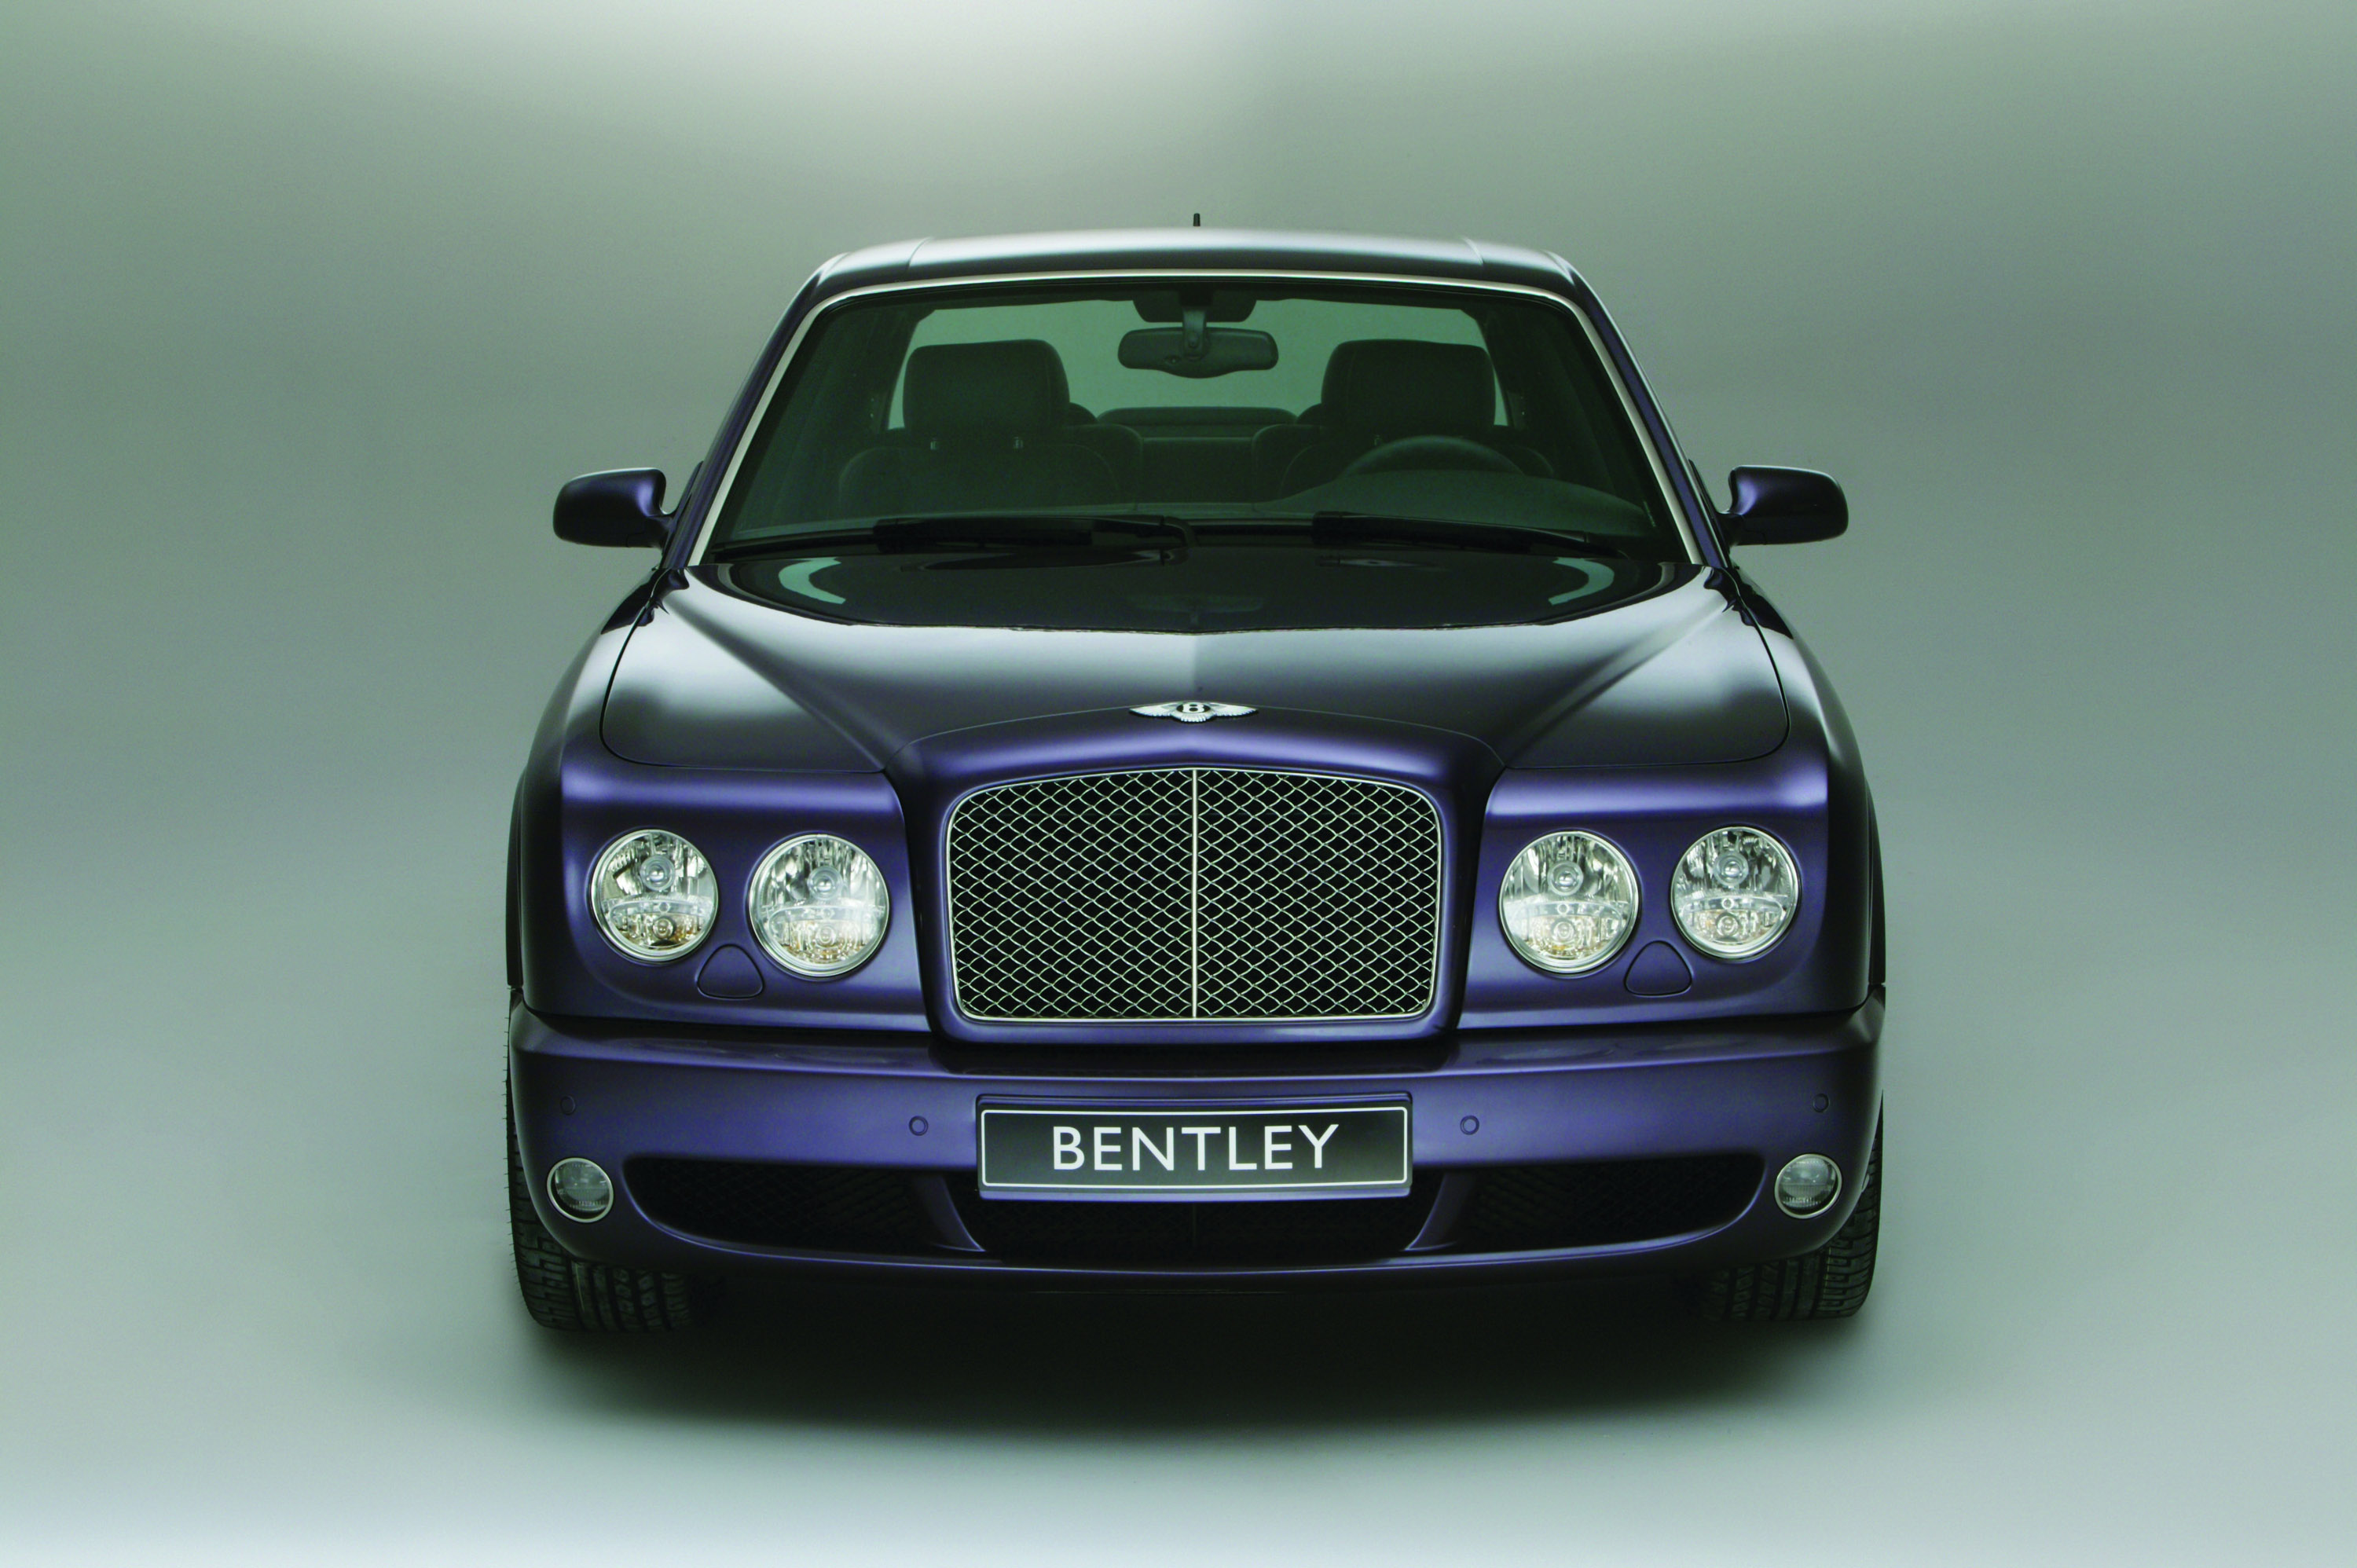 2005 bentley arnage t 01 mitsubishi galant fortis ralliart picture 32881  at bayanpartner.co